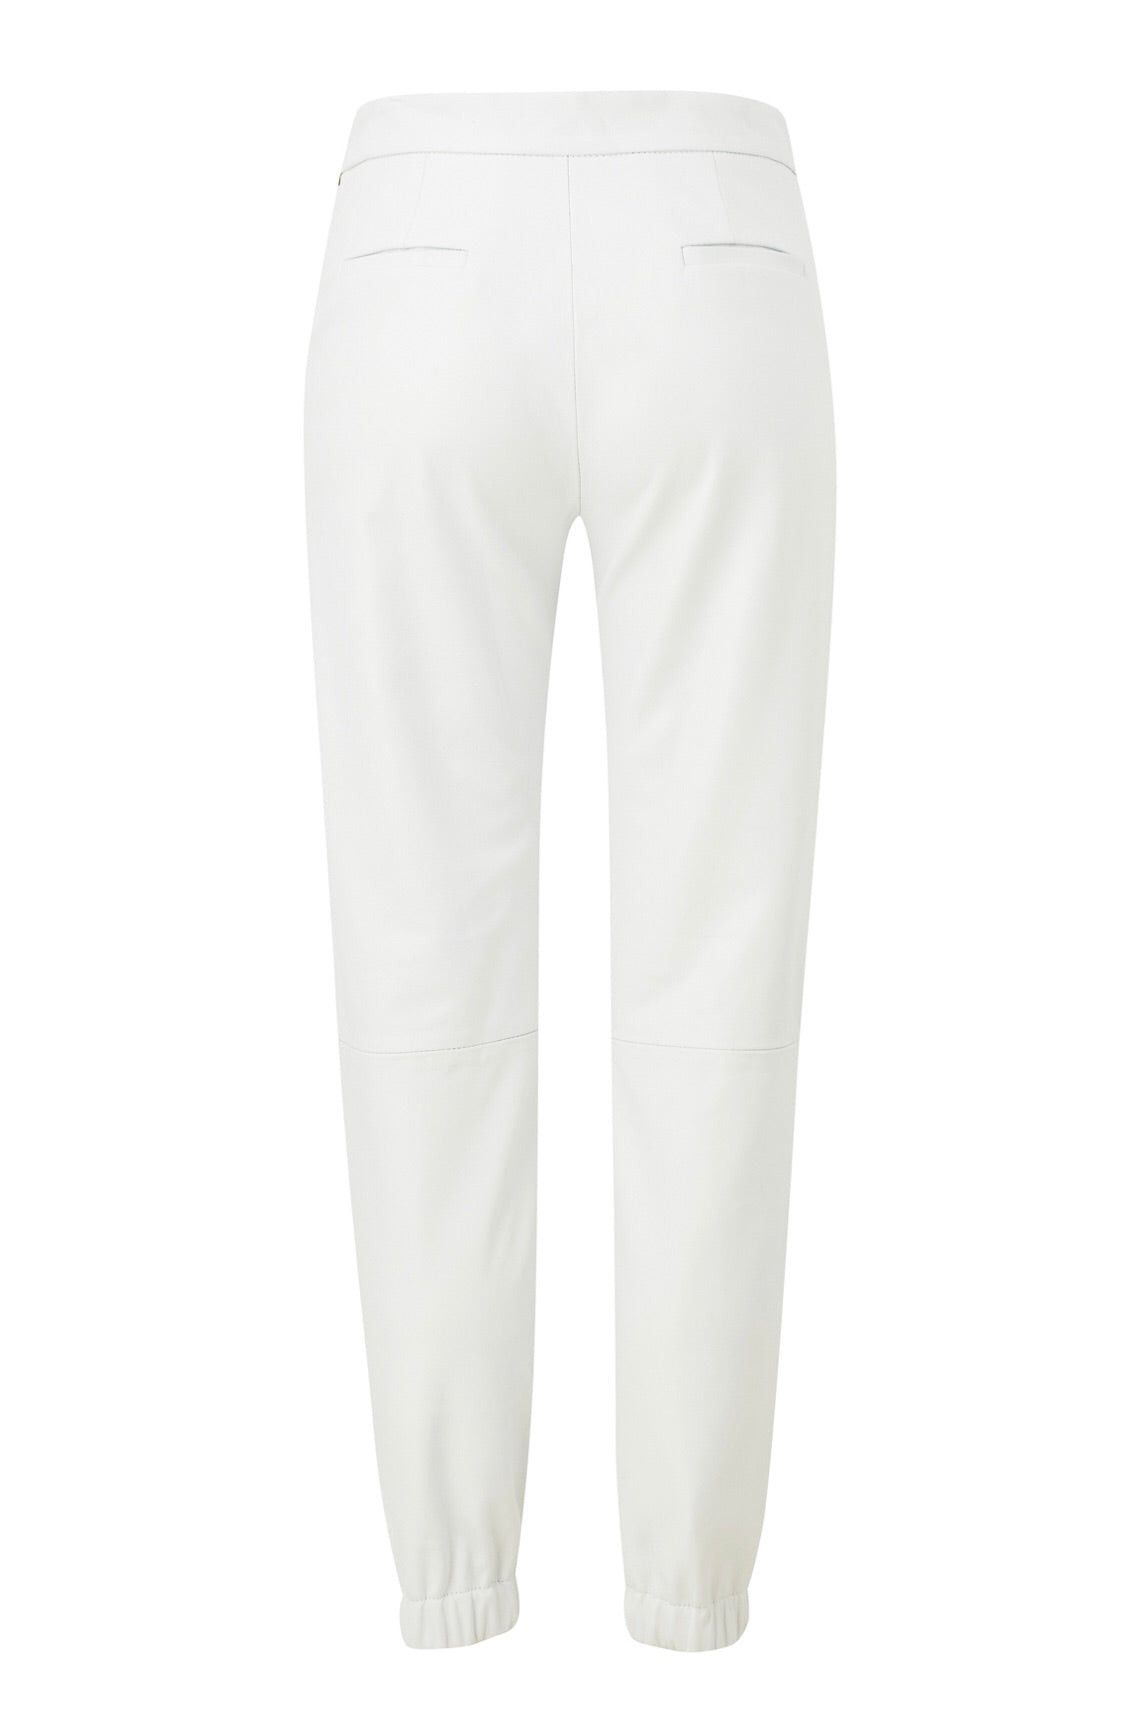 Amanda Wakeley Off White Leather Cuff Pants - nwt